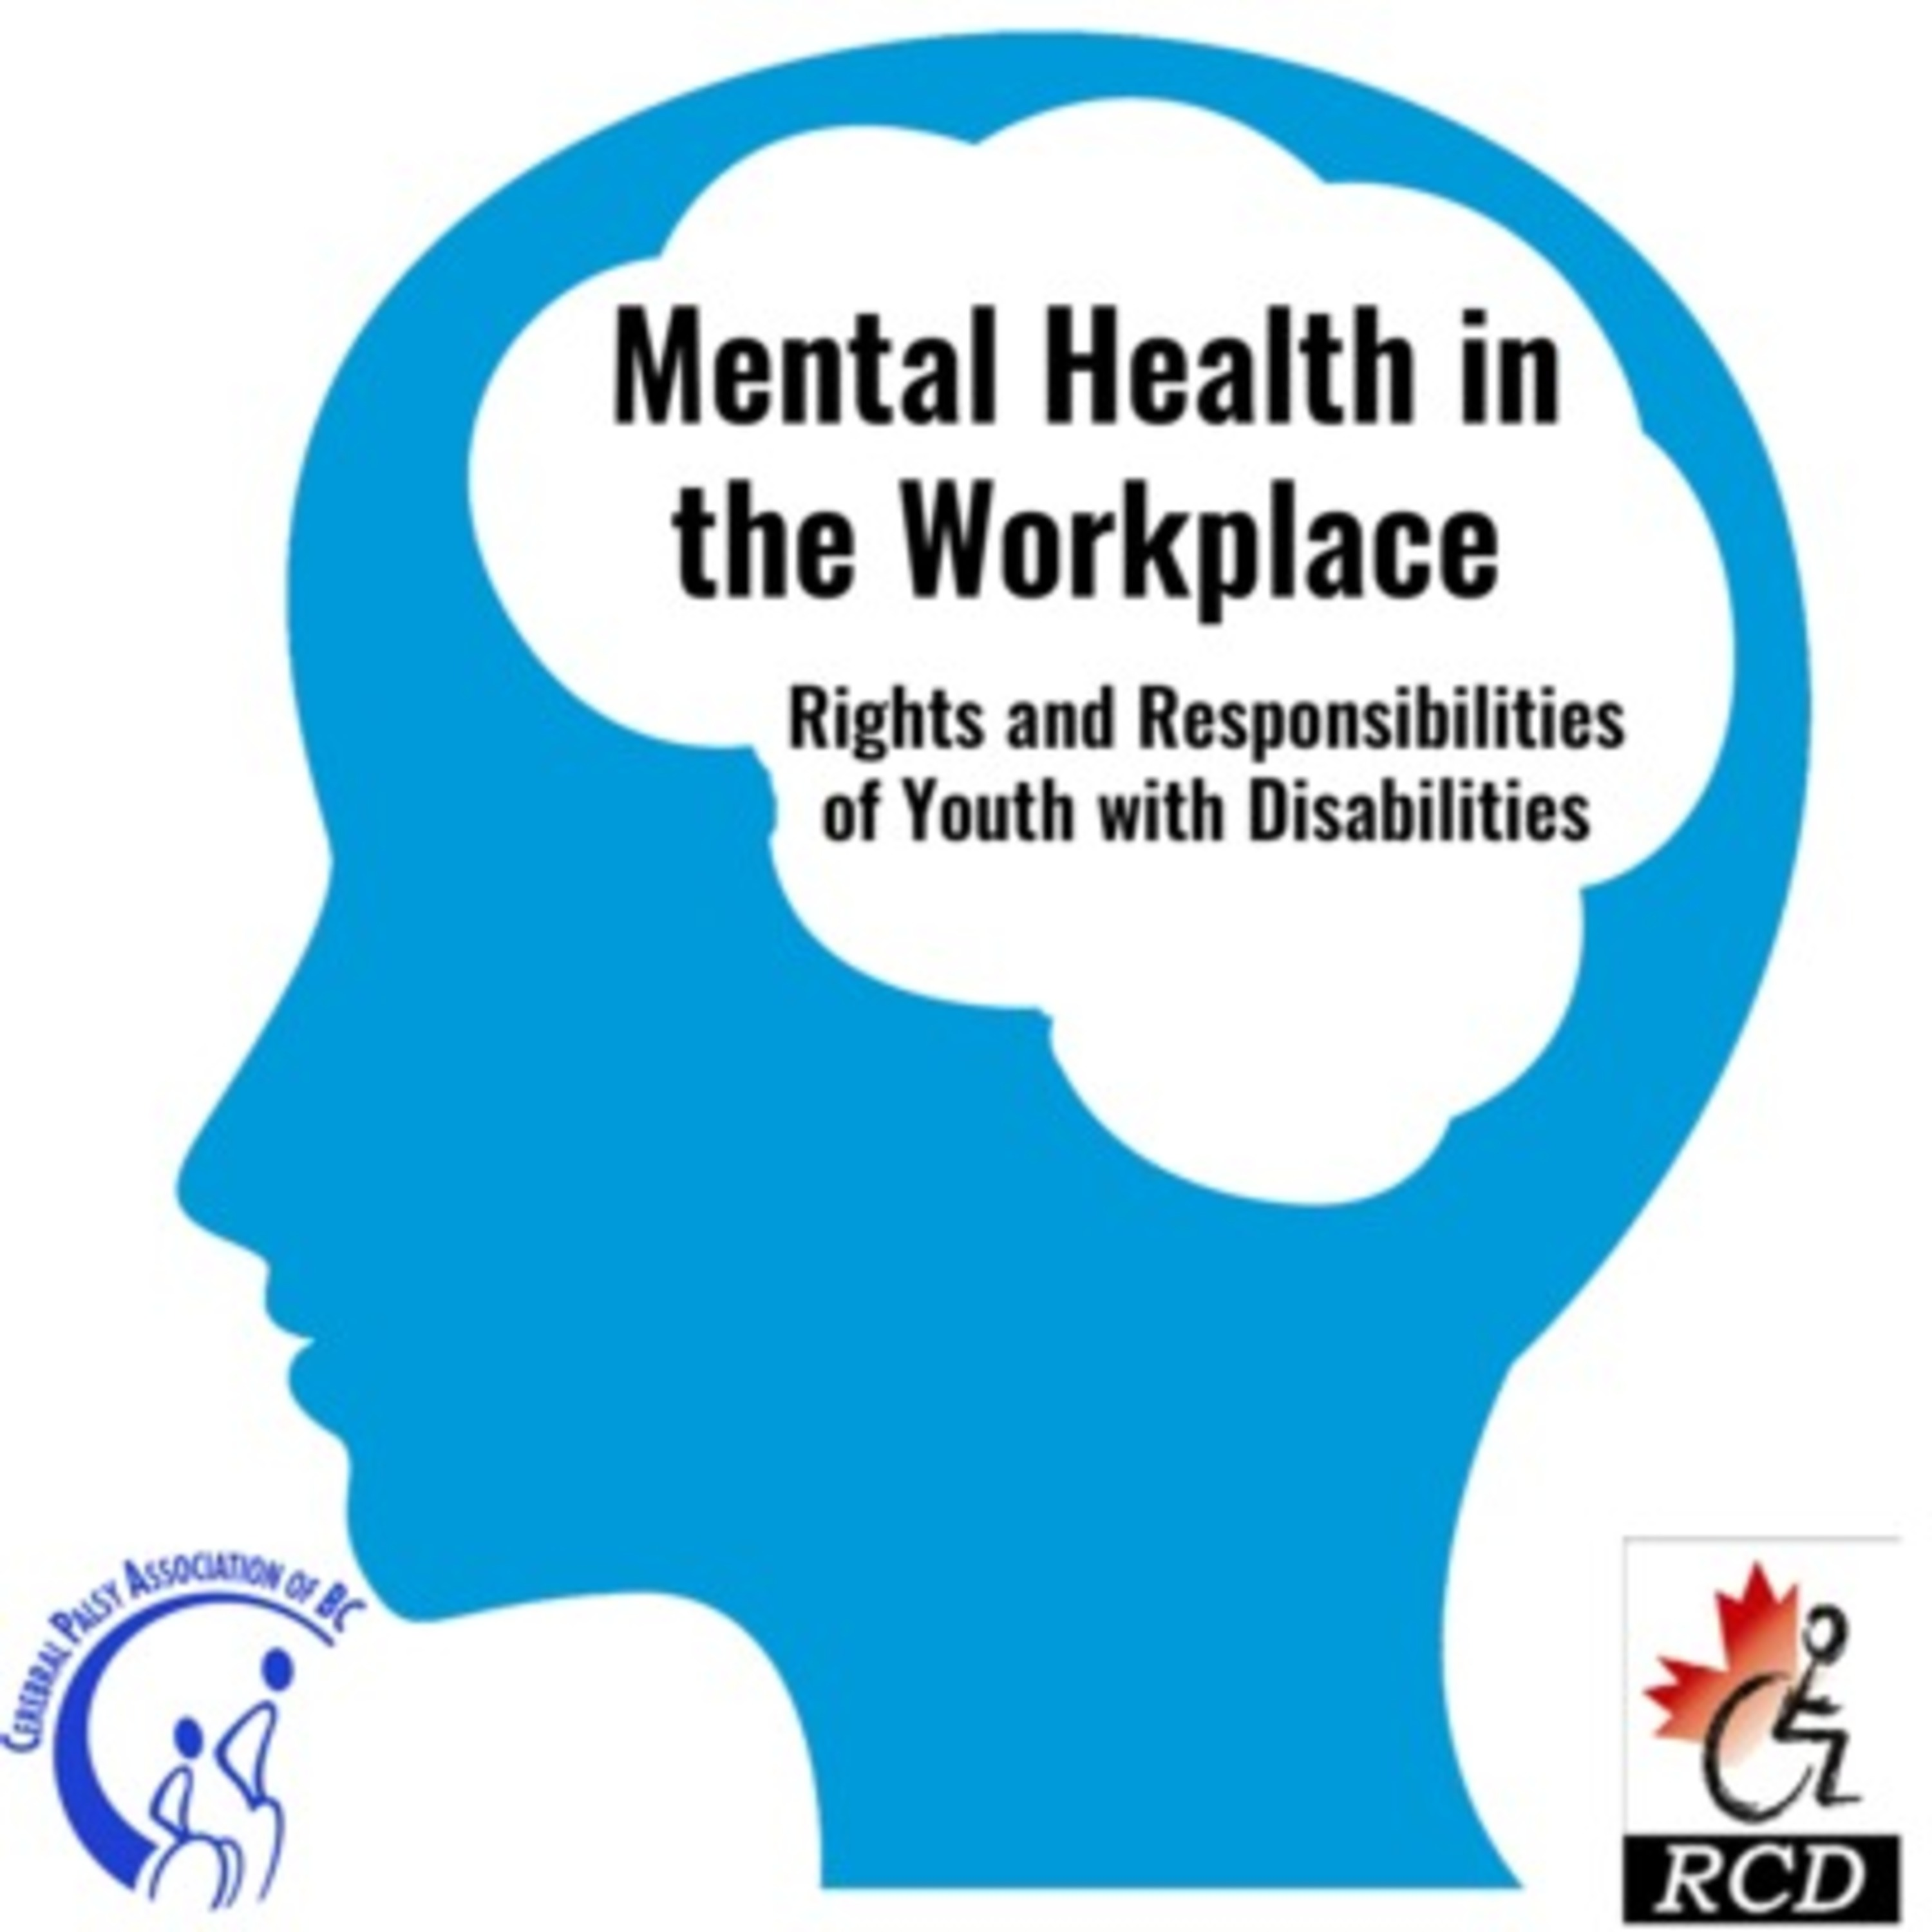 Accommodating mental health in the workplace